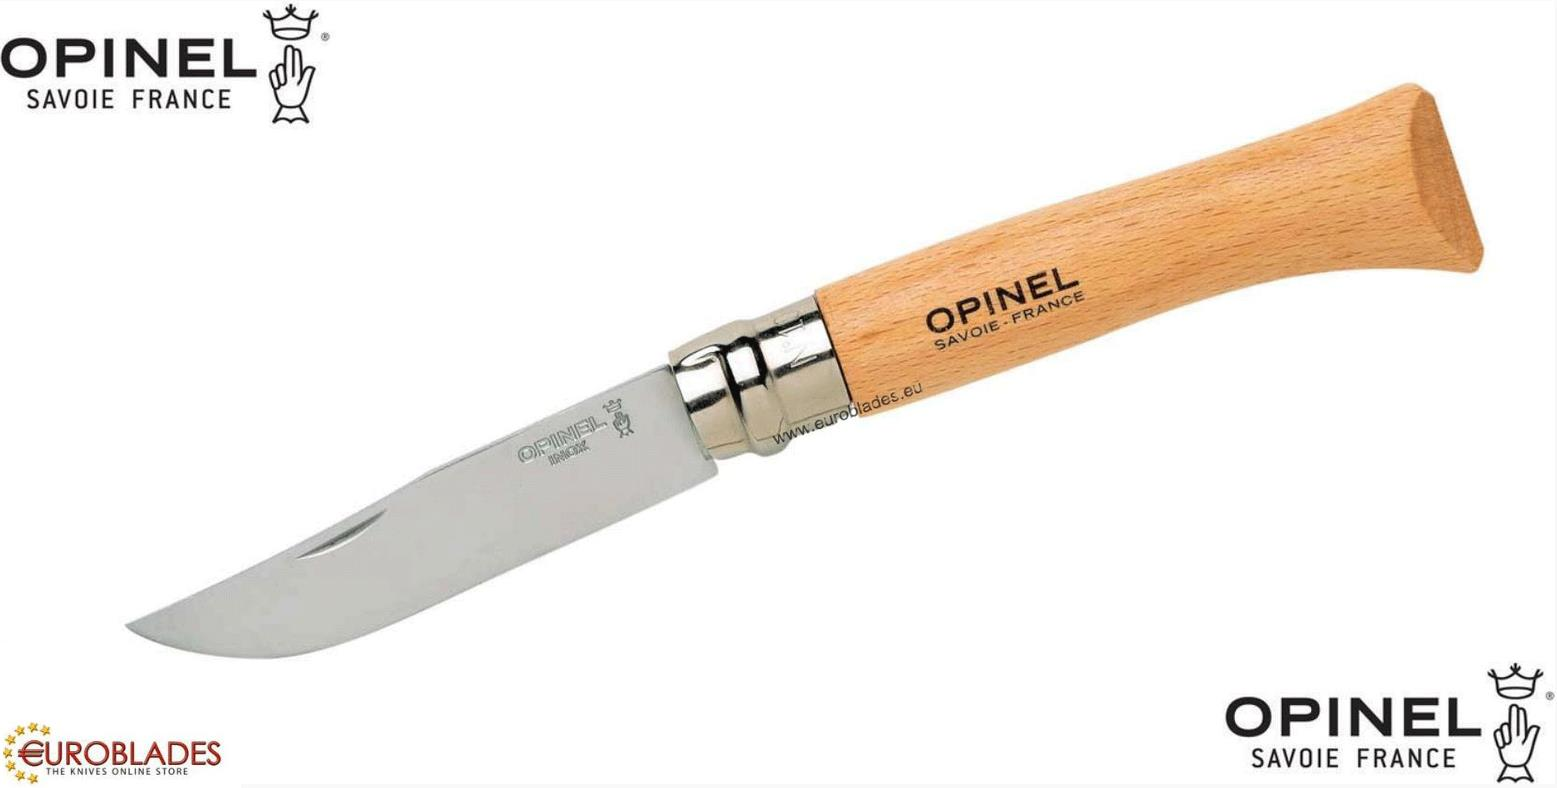 Opinel France, Tourist and camping knife with folding blade.The knife is made of stainless steel model: 12c27,.Blade size of 10 cm and total length of 20.5 cm. Manufacturer: Opinel France